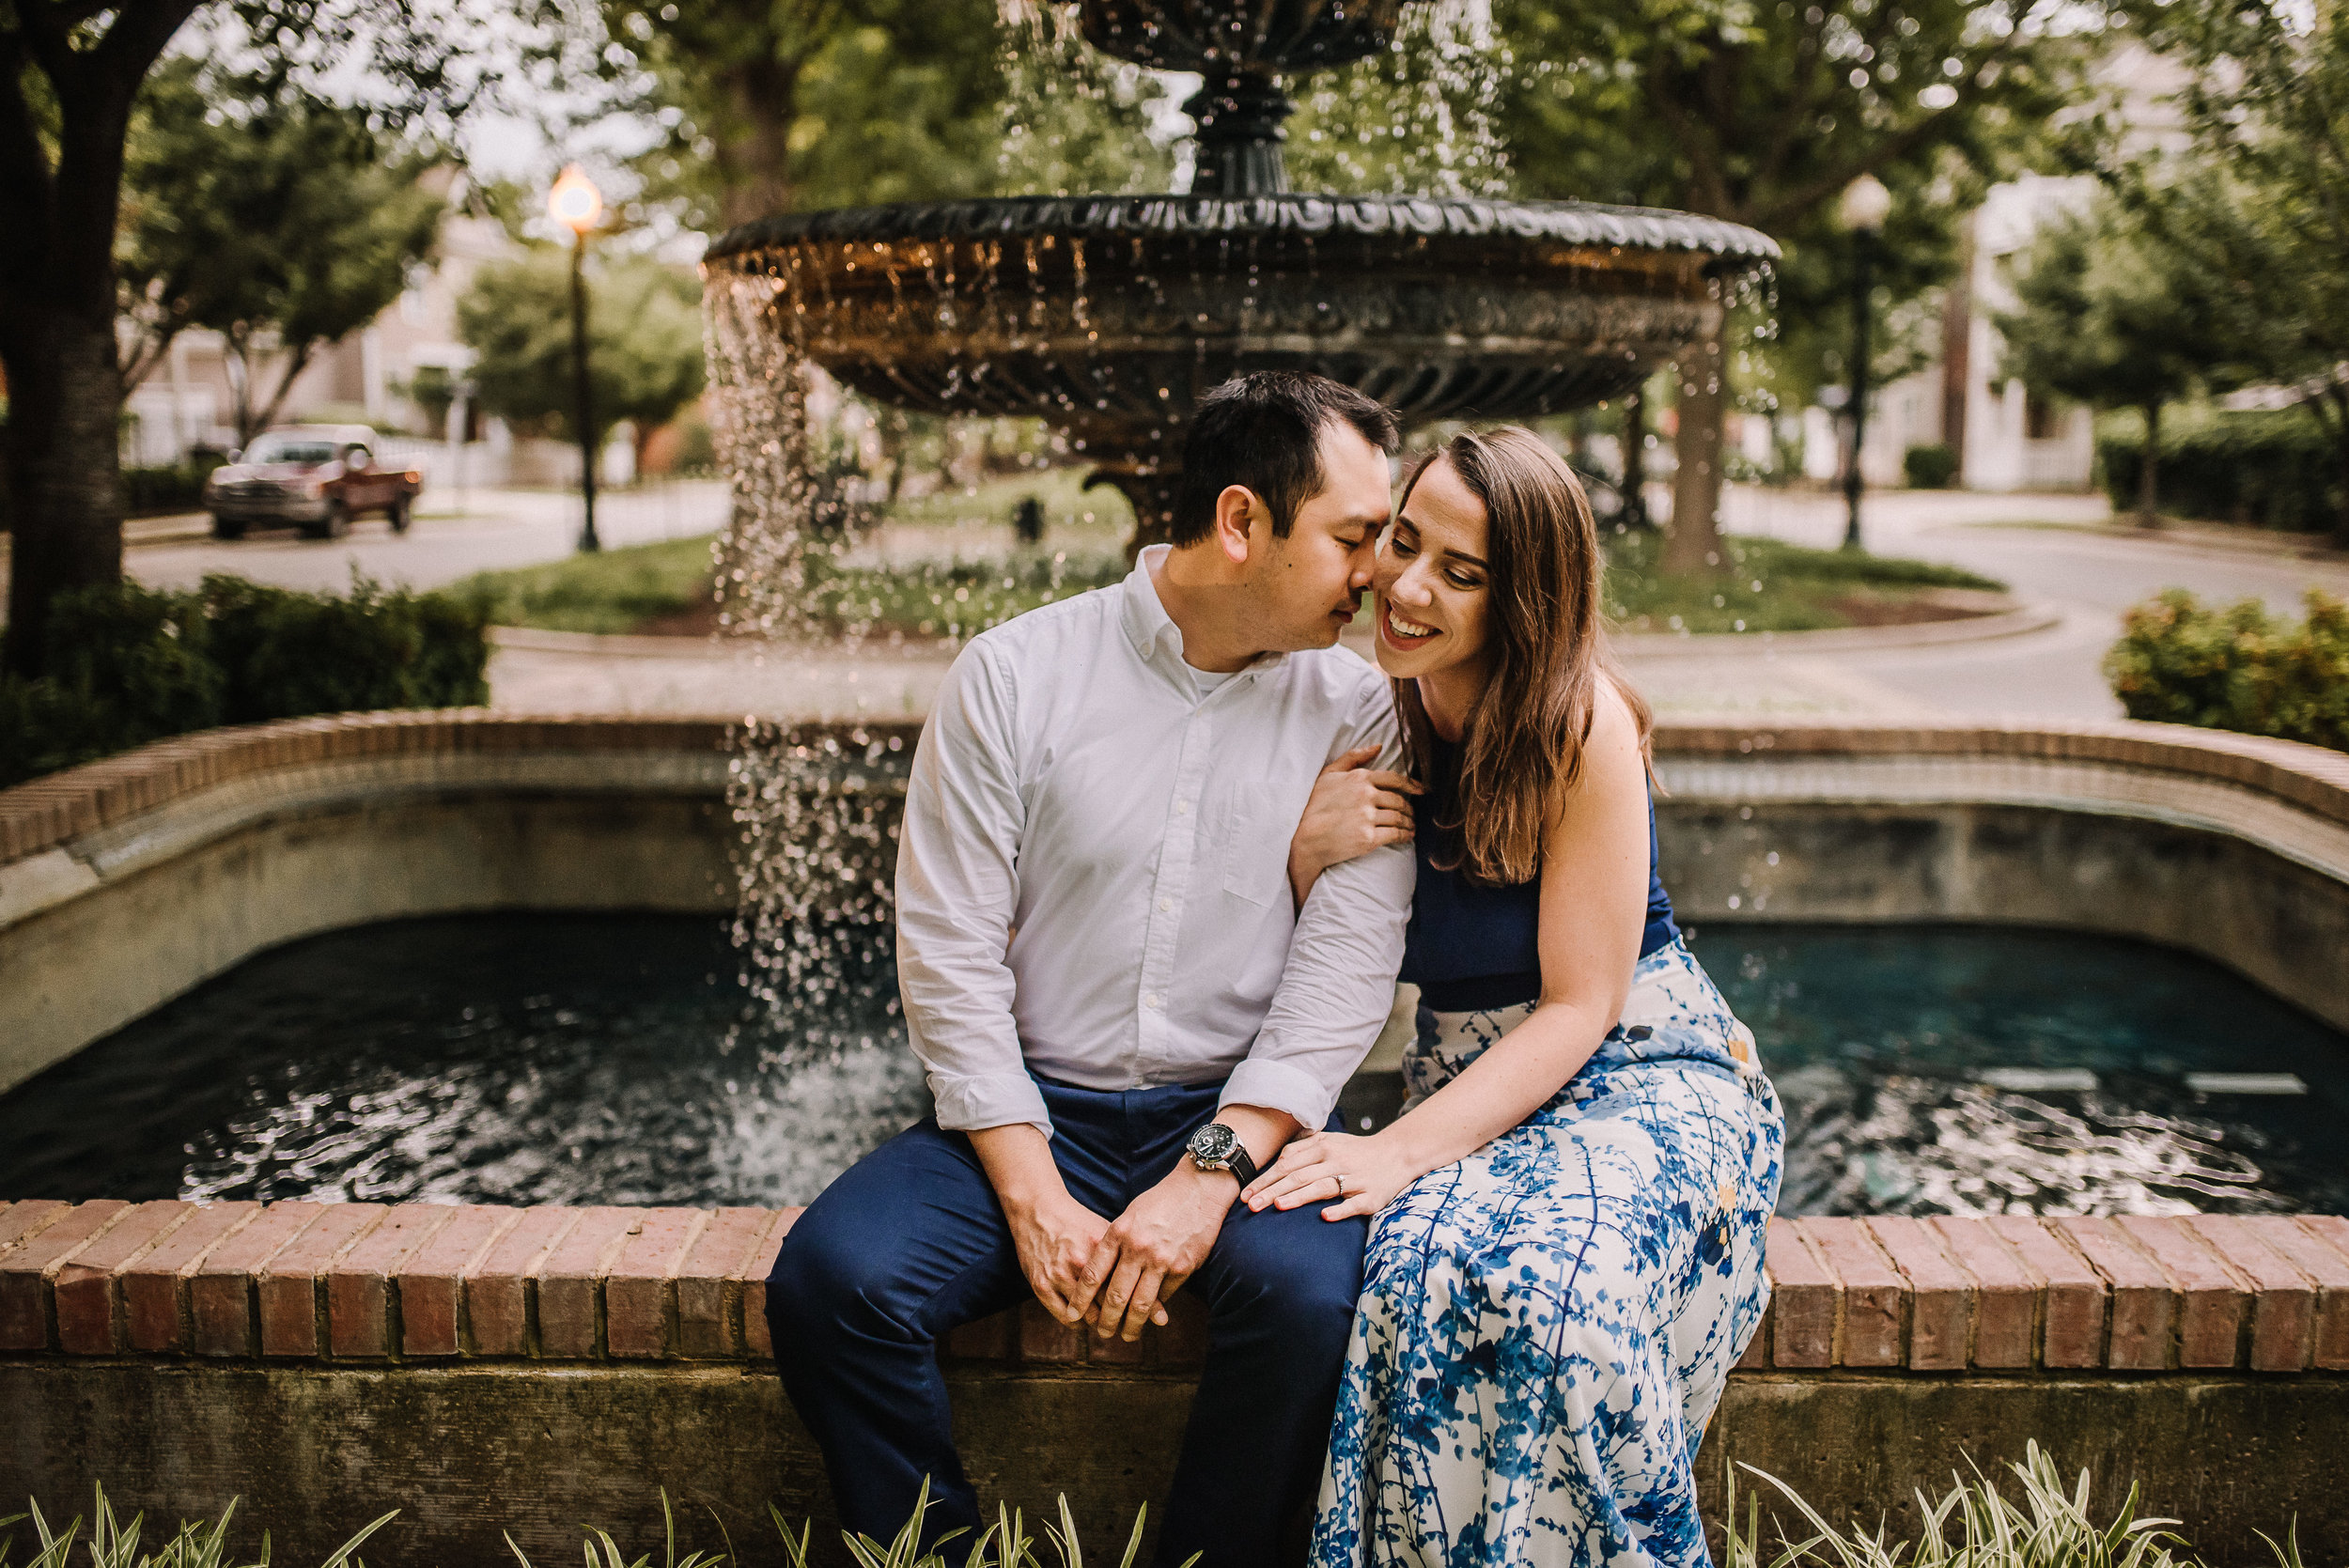 Jenny&Patrick_Downtown Memphis Engagement_Ashley Benham Photography-6.jpg